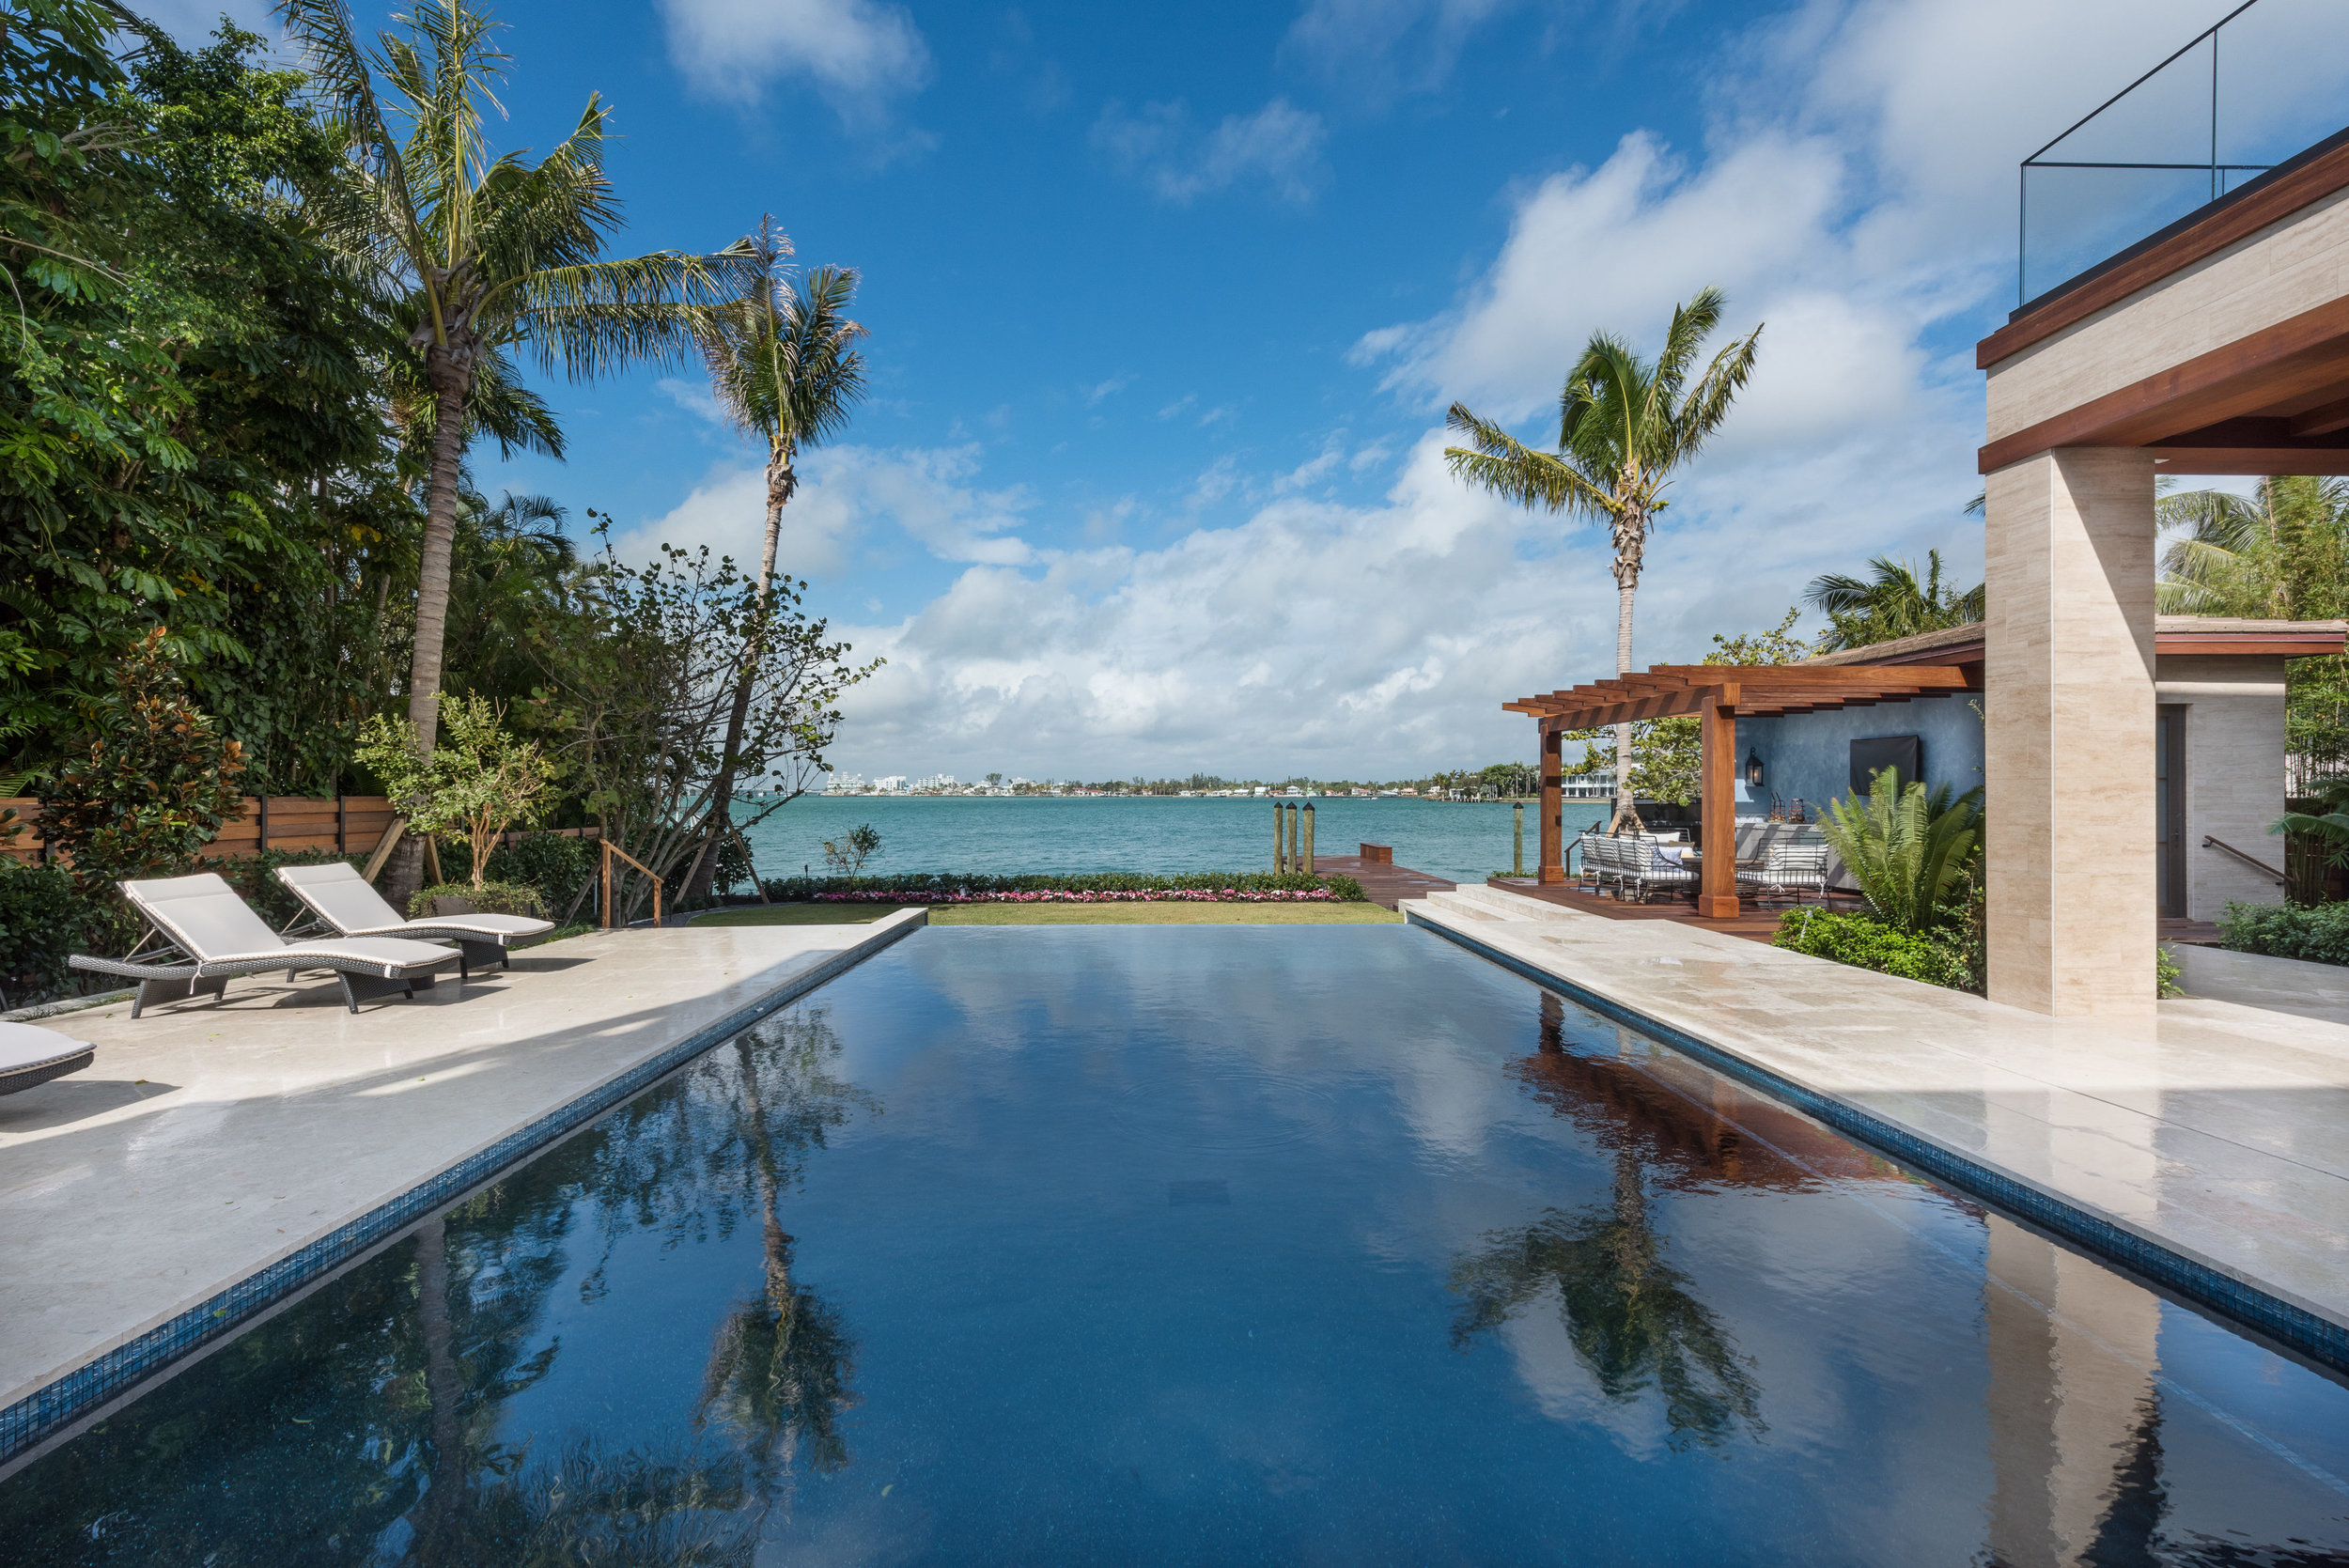 6020 N Bay Road, Miami Beach was listed with Nelson Gonzalez of EWM